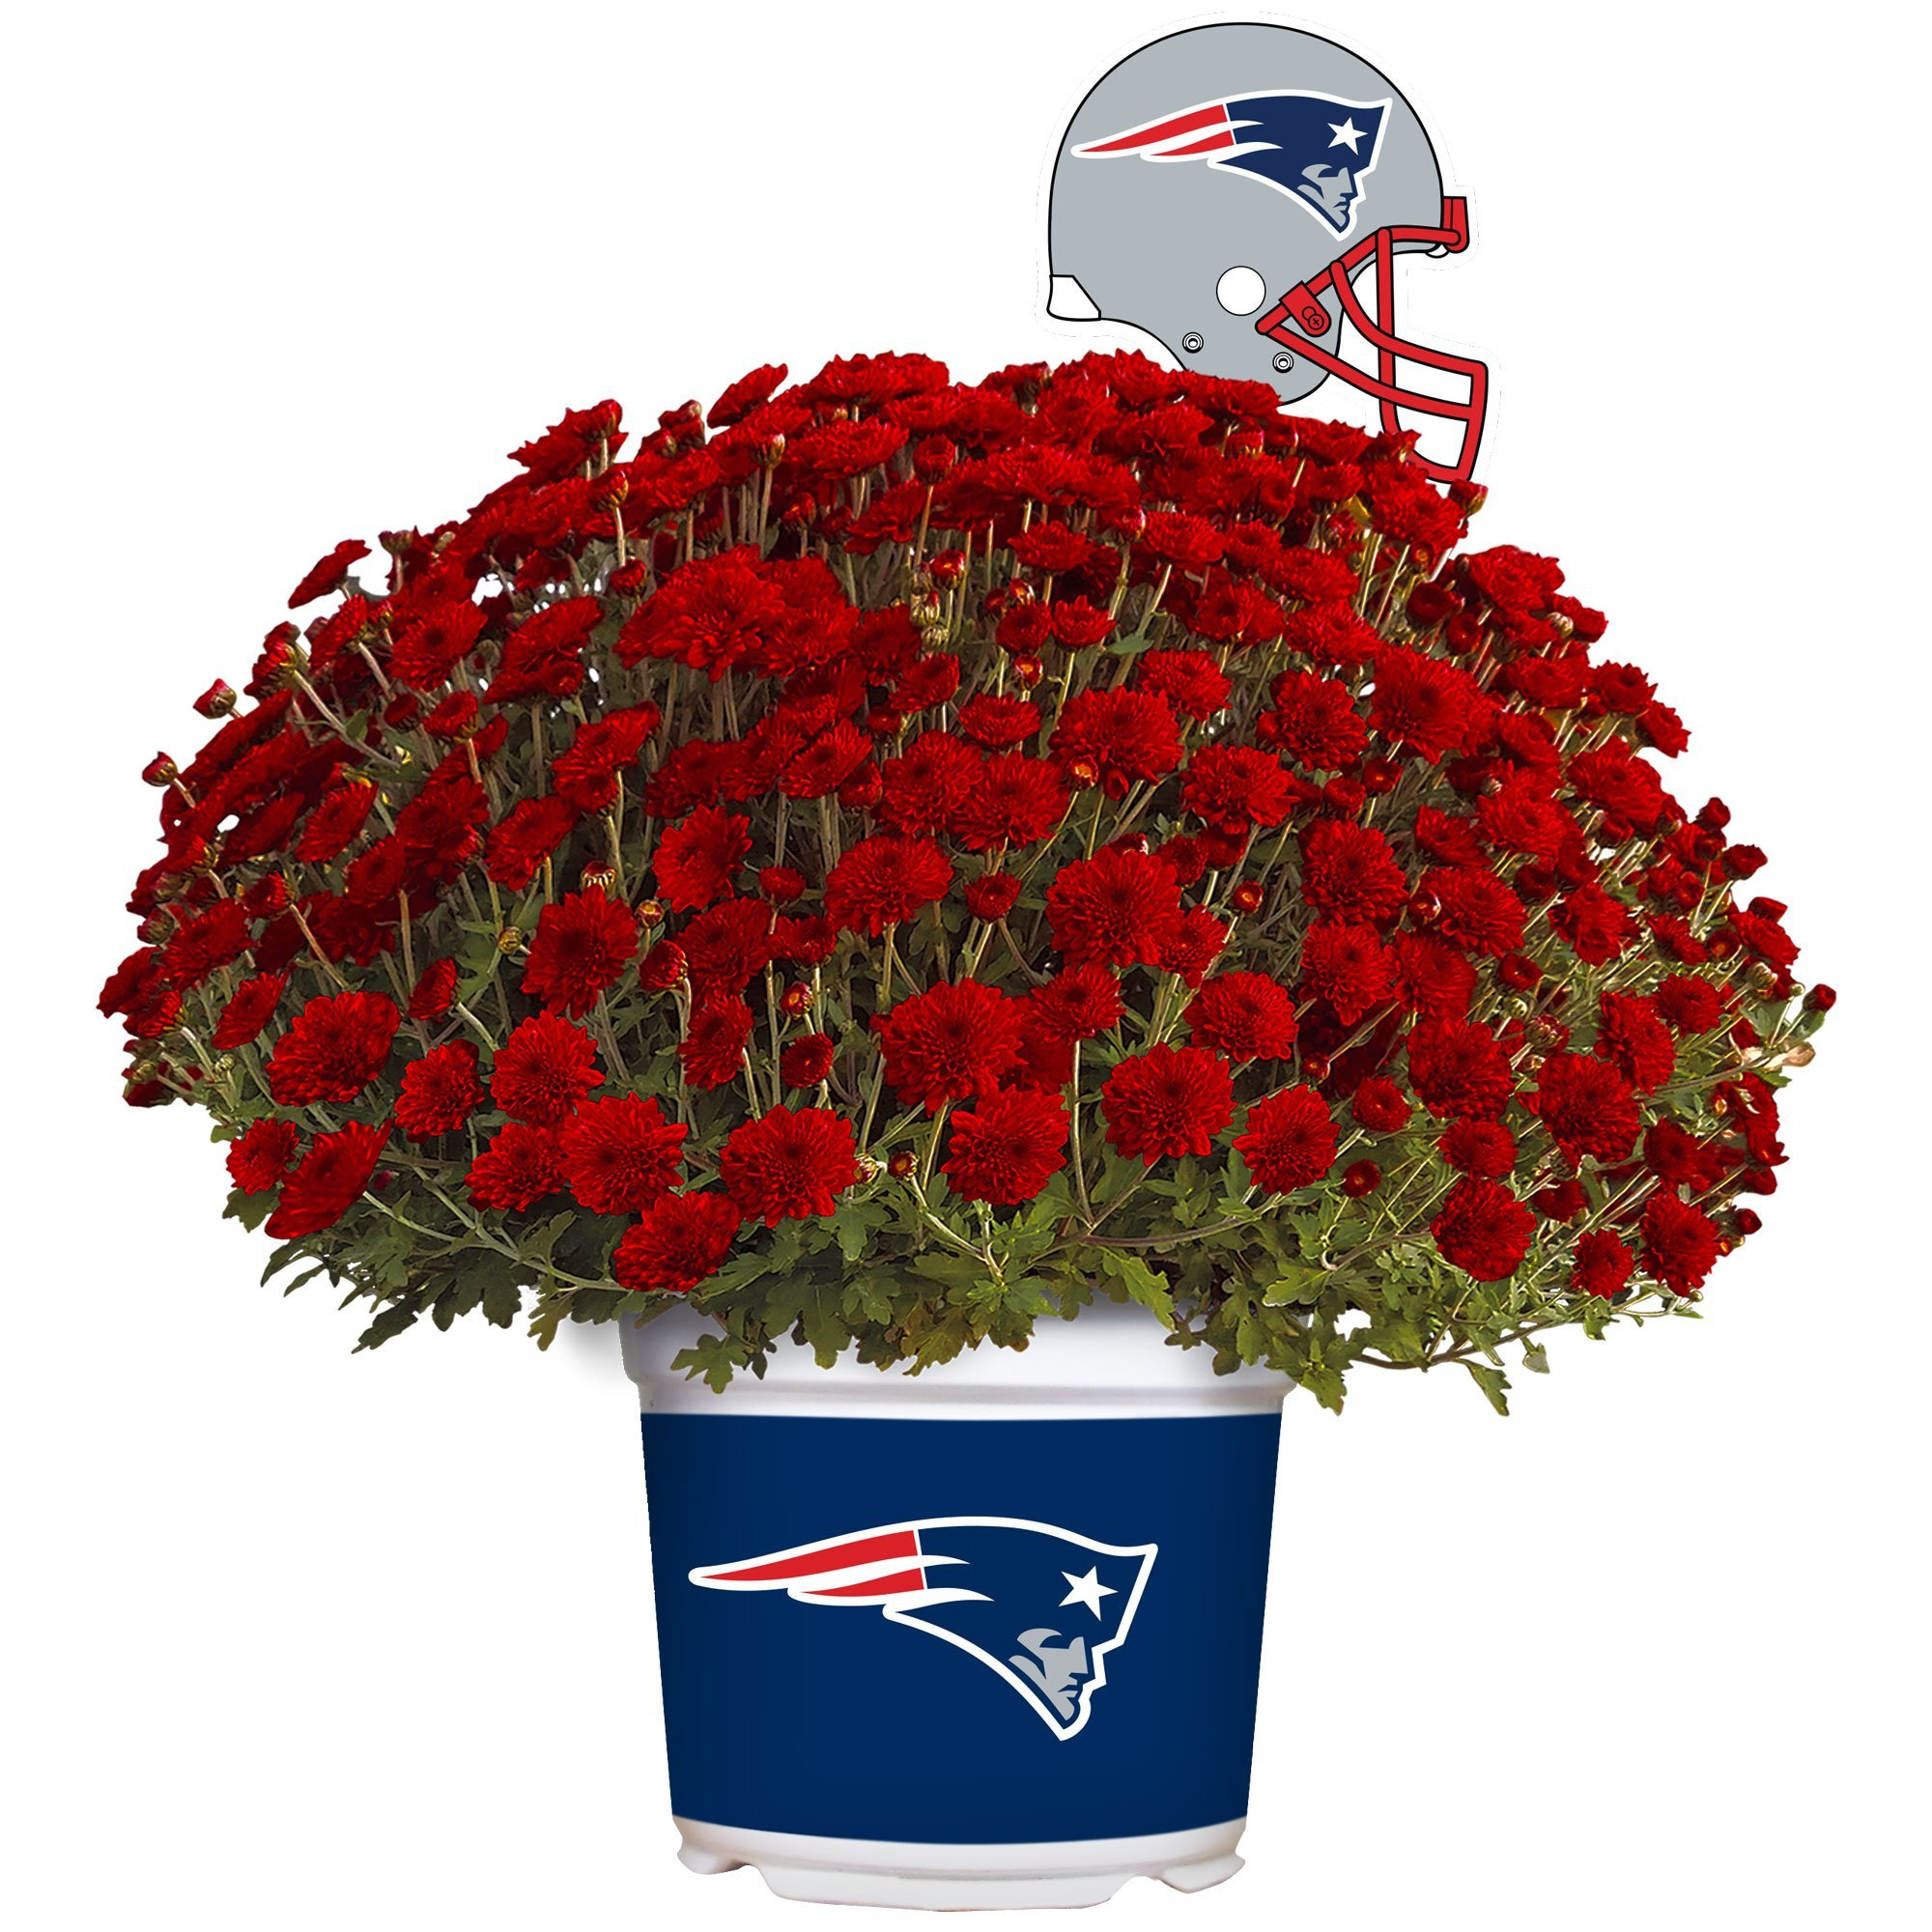 Sporticulture New England Patriots Color Team Mum, 3 Quart, Red by Sporticulture